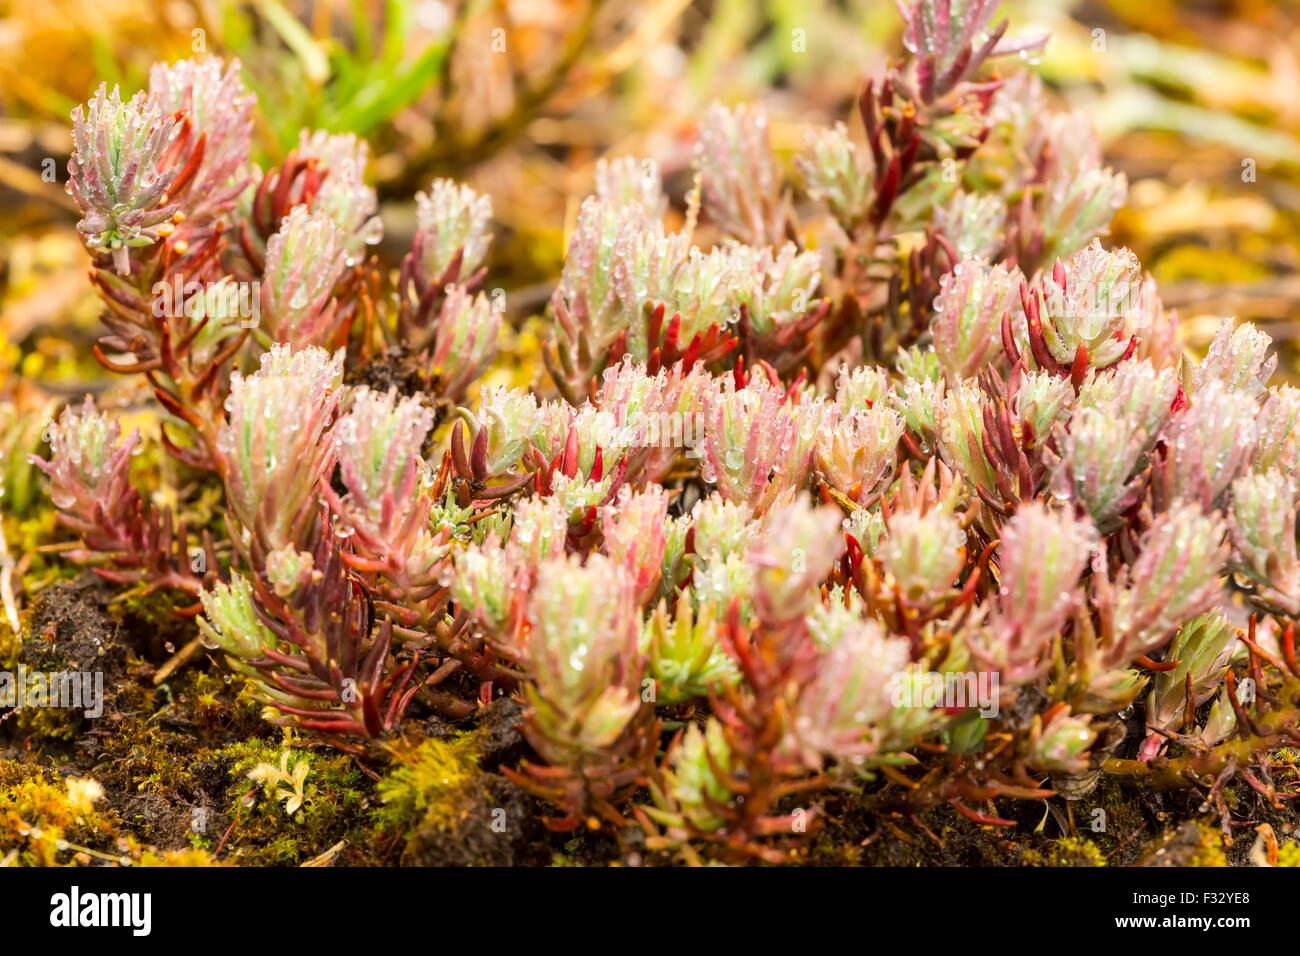 Glistening Pink plant with water globules - Stock Image